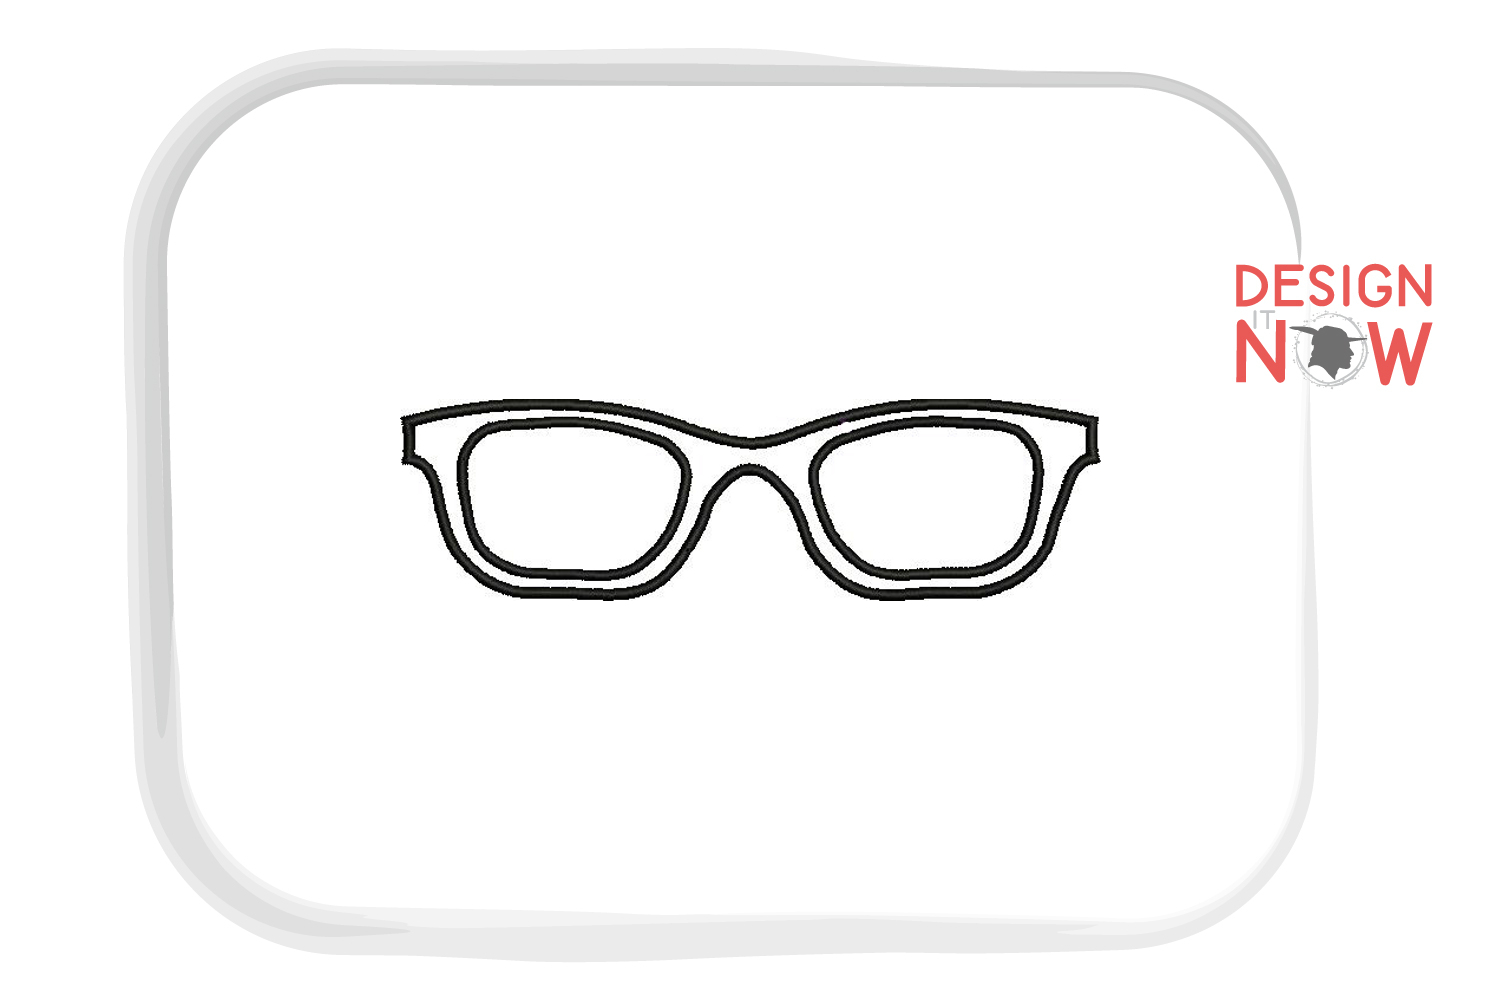 Glasses Applique Embroidery Design, Sunglasses Embroidery example image 3